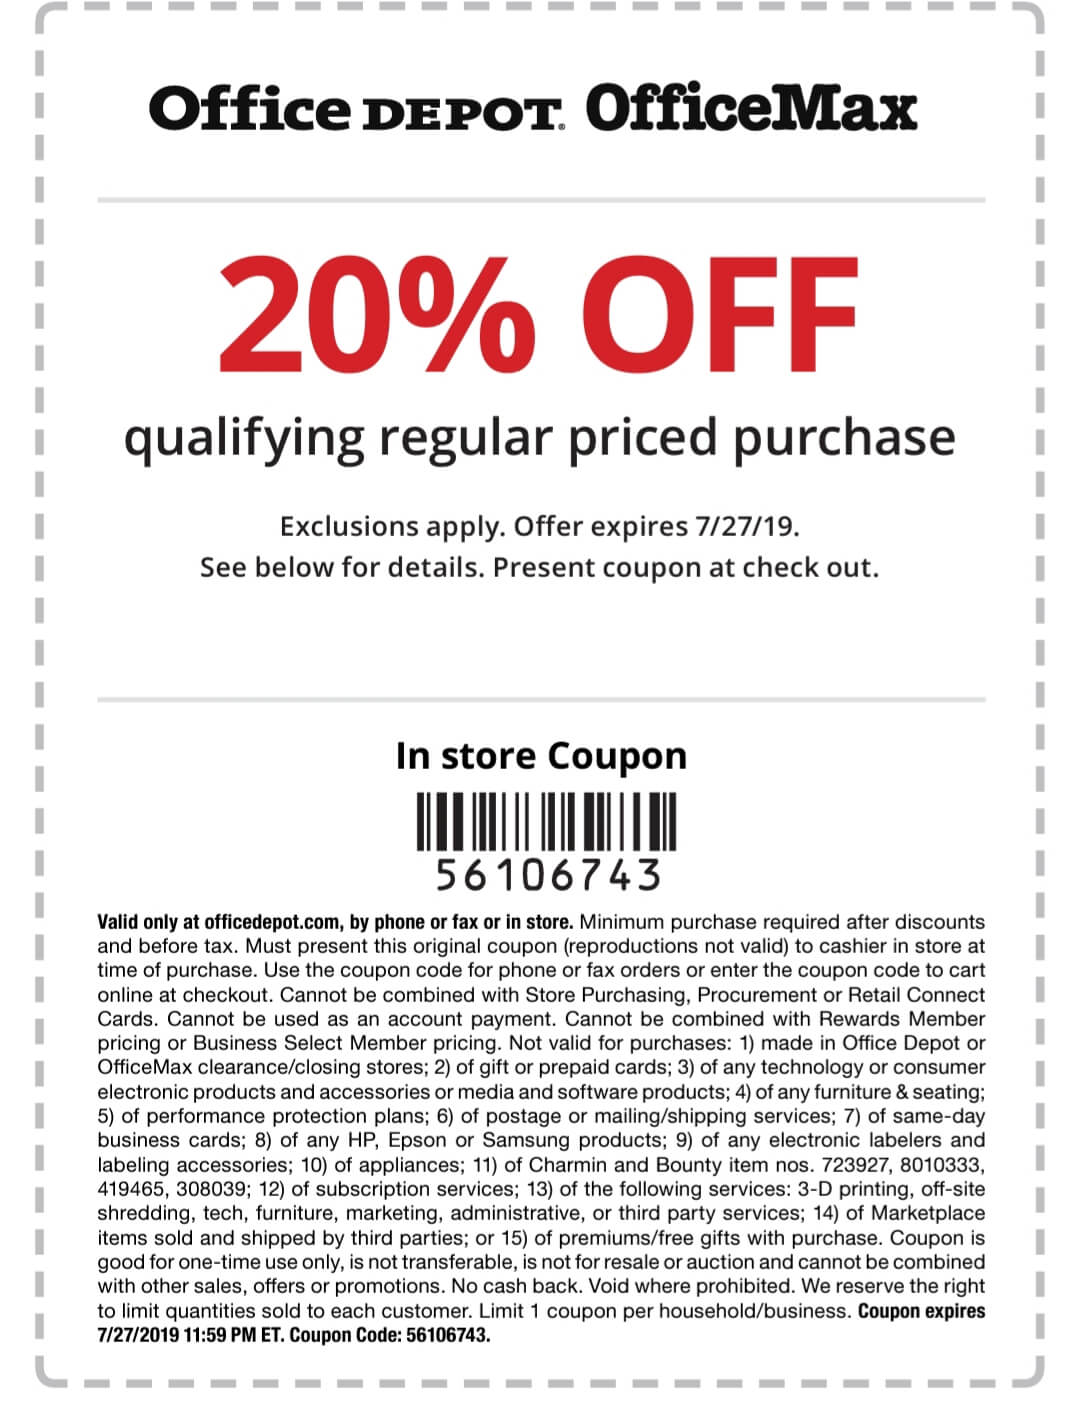 Office Depot Coupon October 2019 20% off at Office Depot & OfficeMax, or online via promo code 56106743